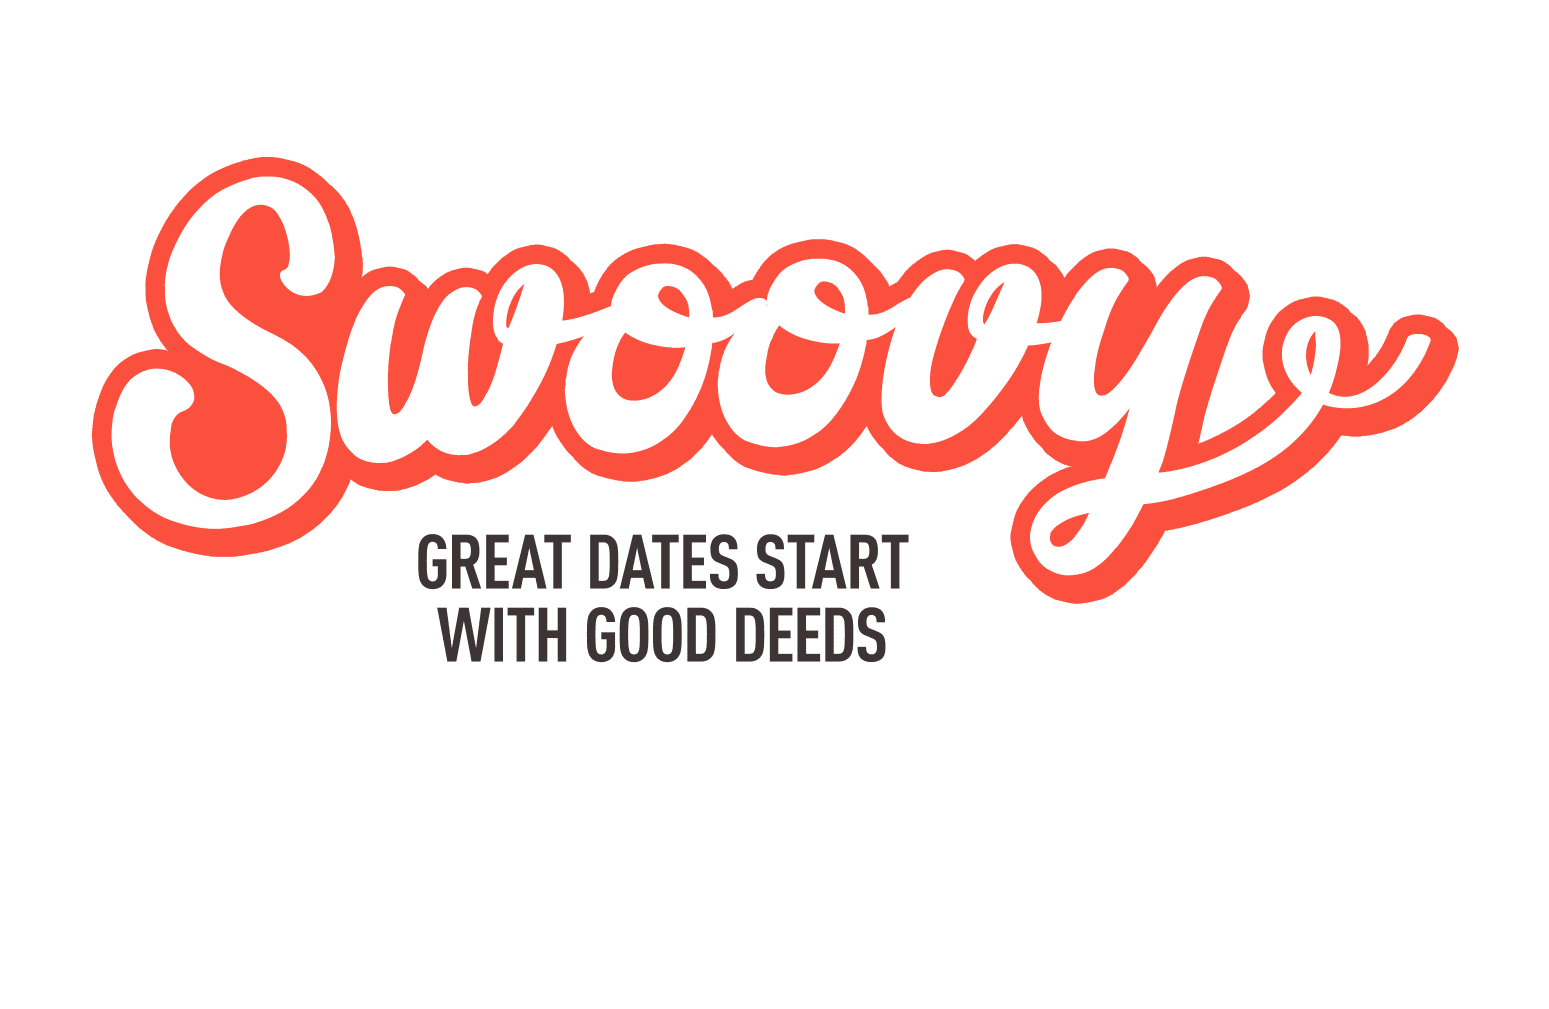 Swoovy: Great Dates Start With Good Deads